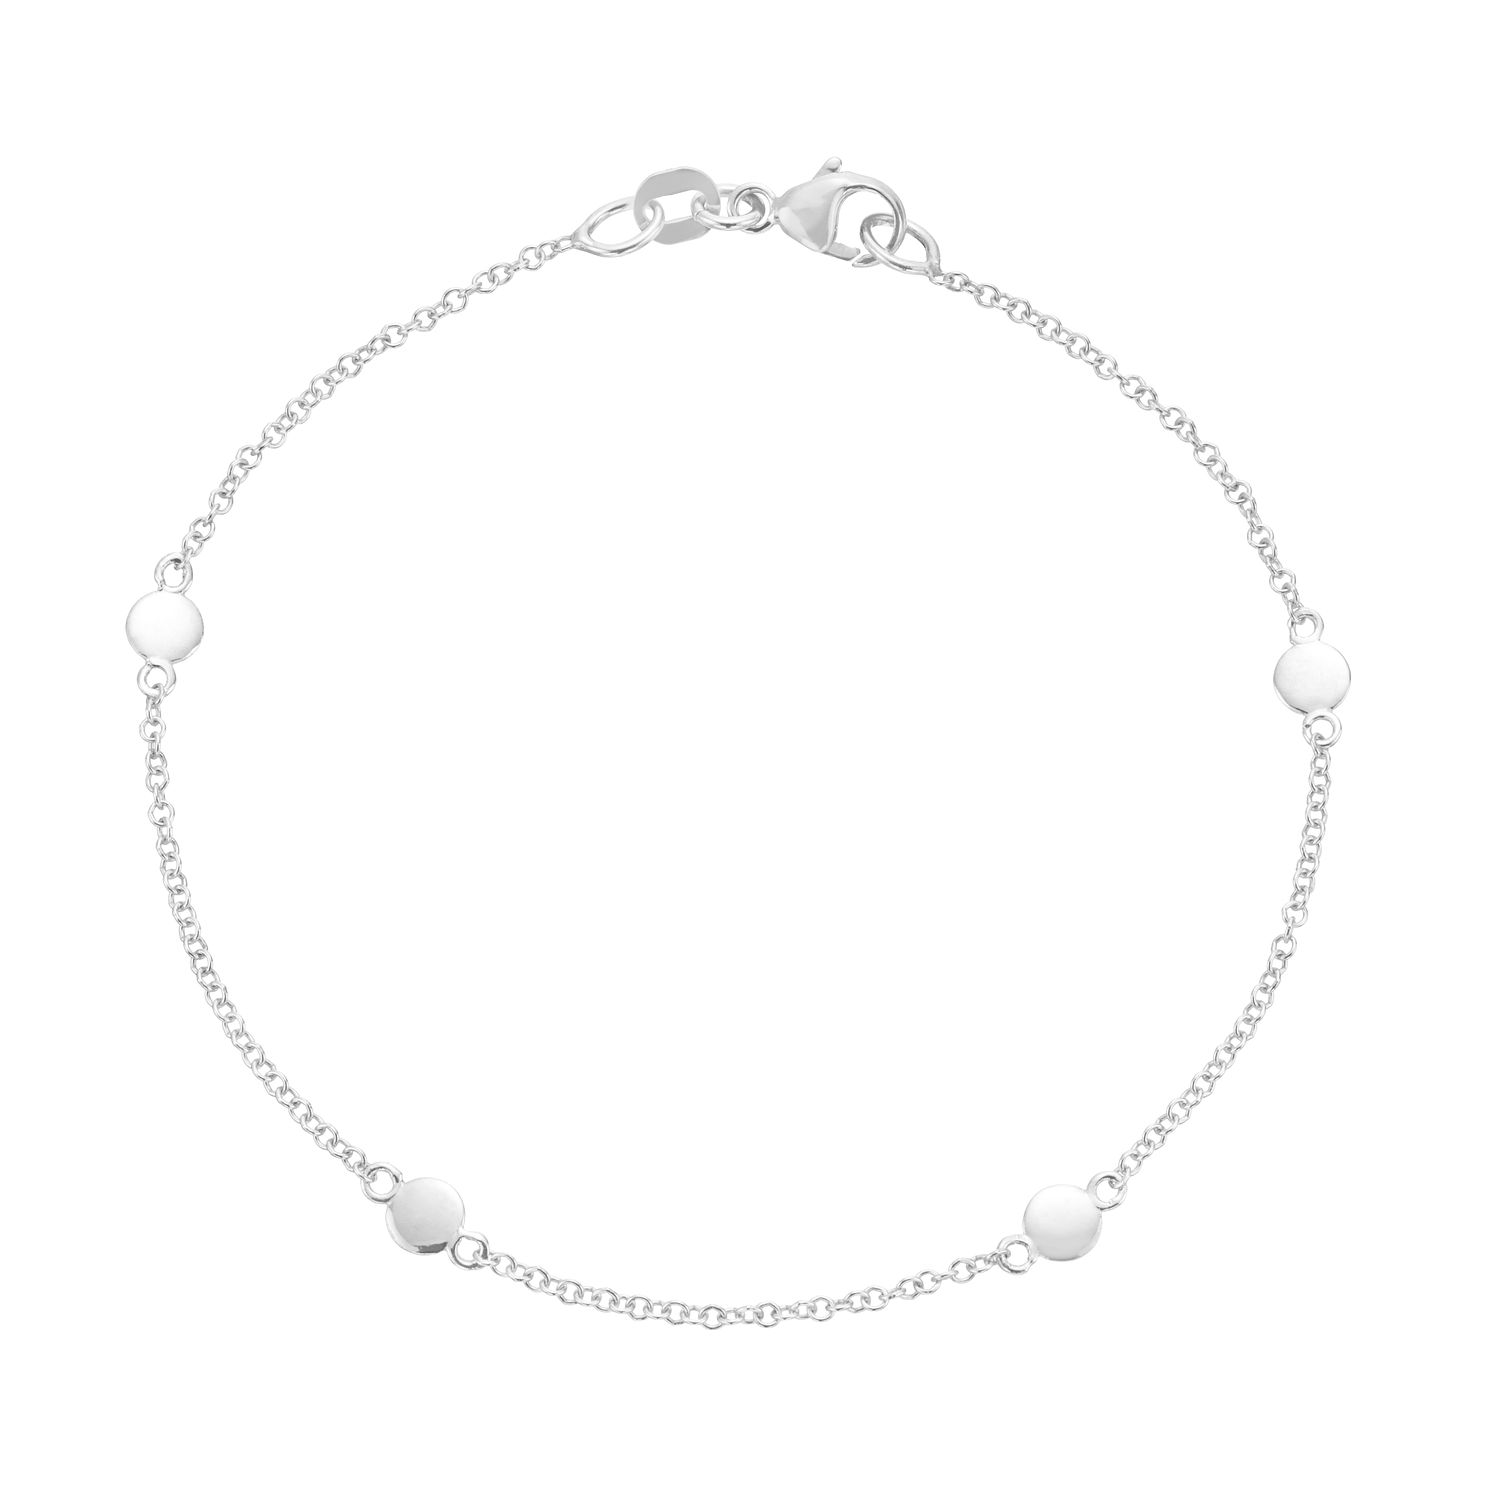 9ct White Gold Mini Disc Station Bracelet - Product number 3165442